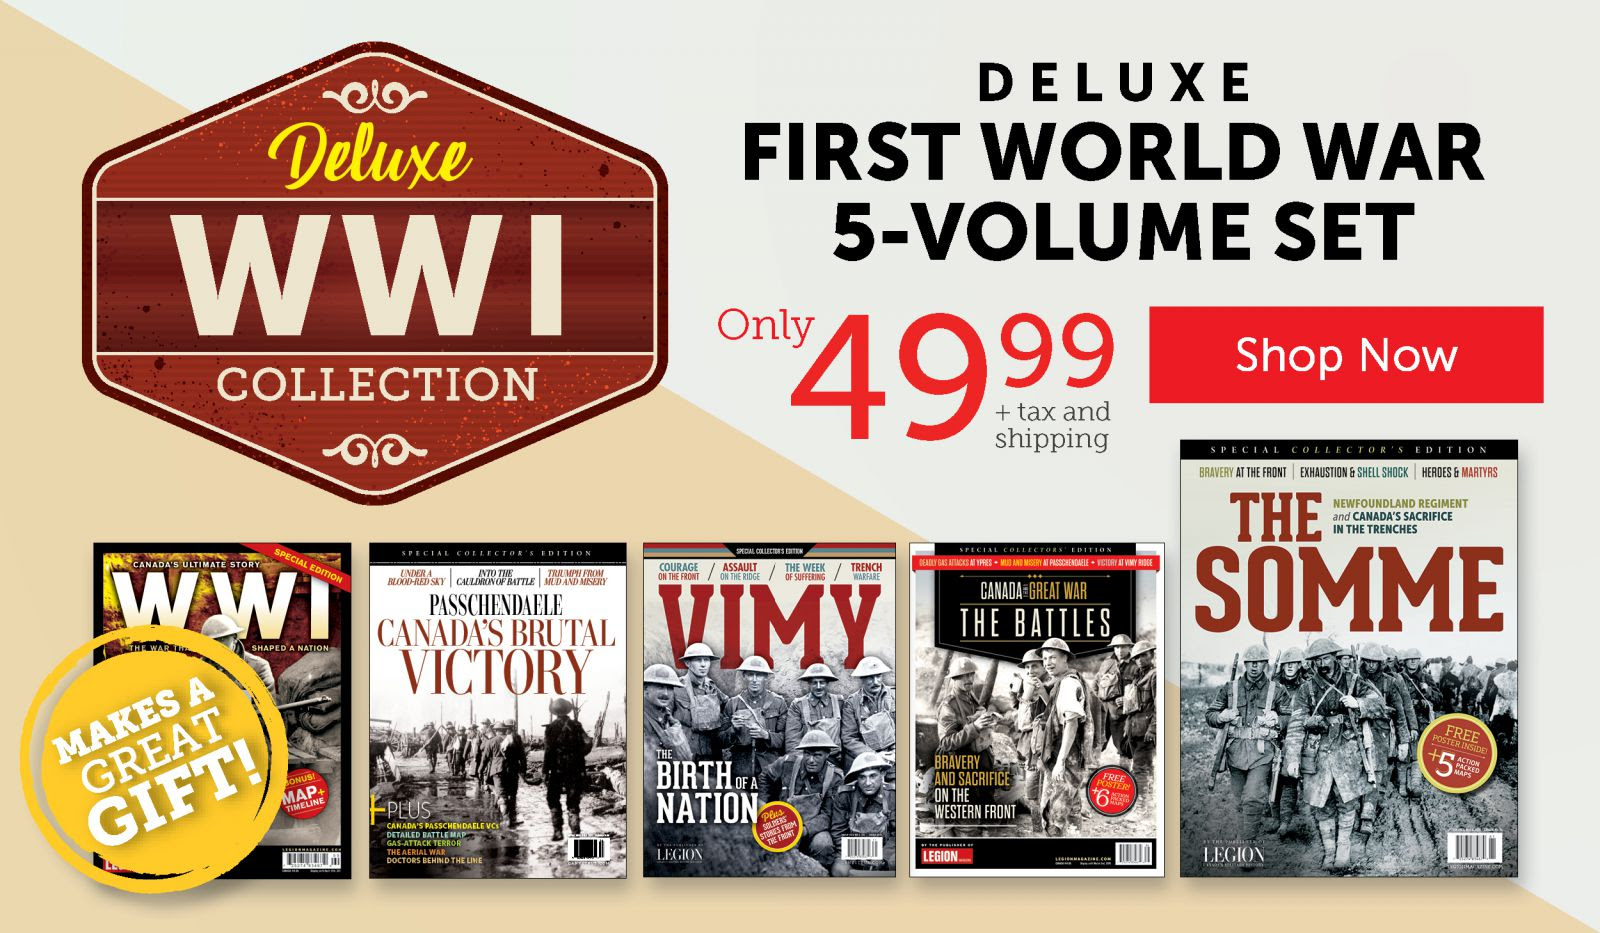 First World War 5-Volume Set